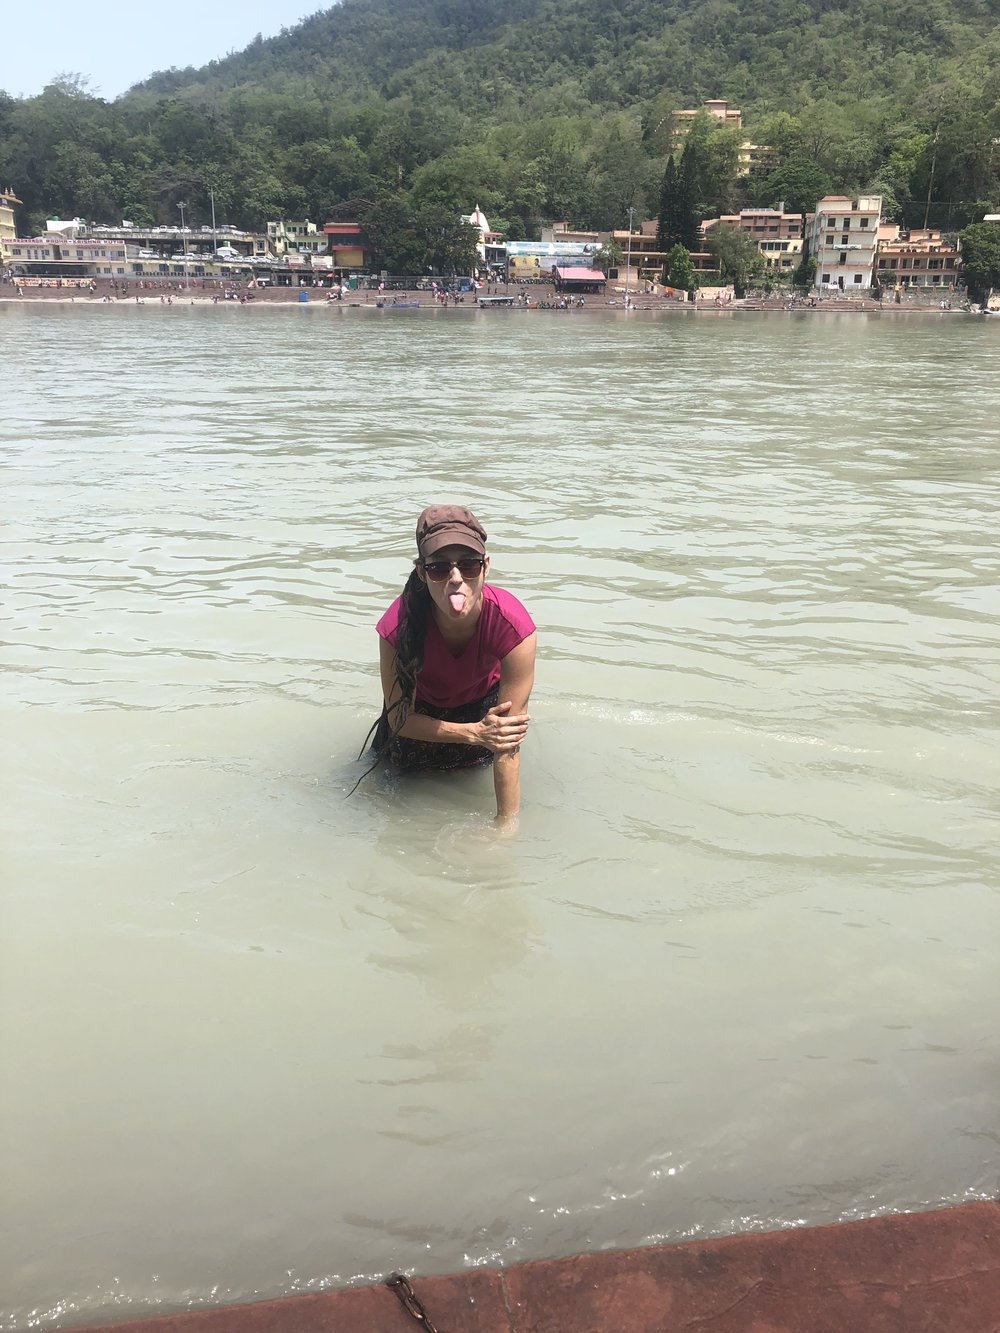 Washing away my sins in the Ganga at Rishikesh. Taking it very seriously of course.